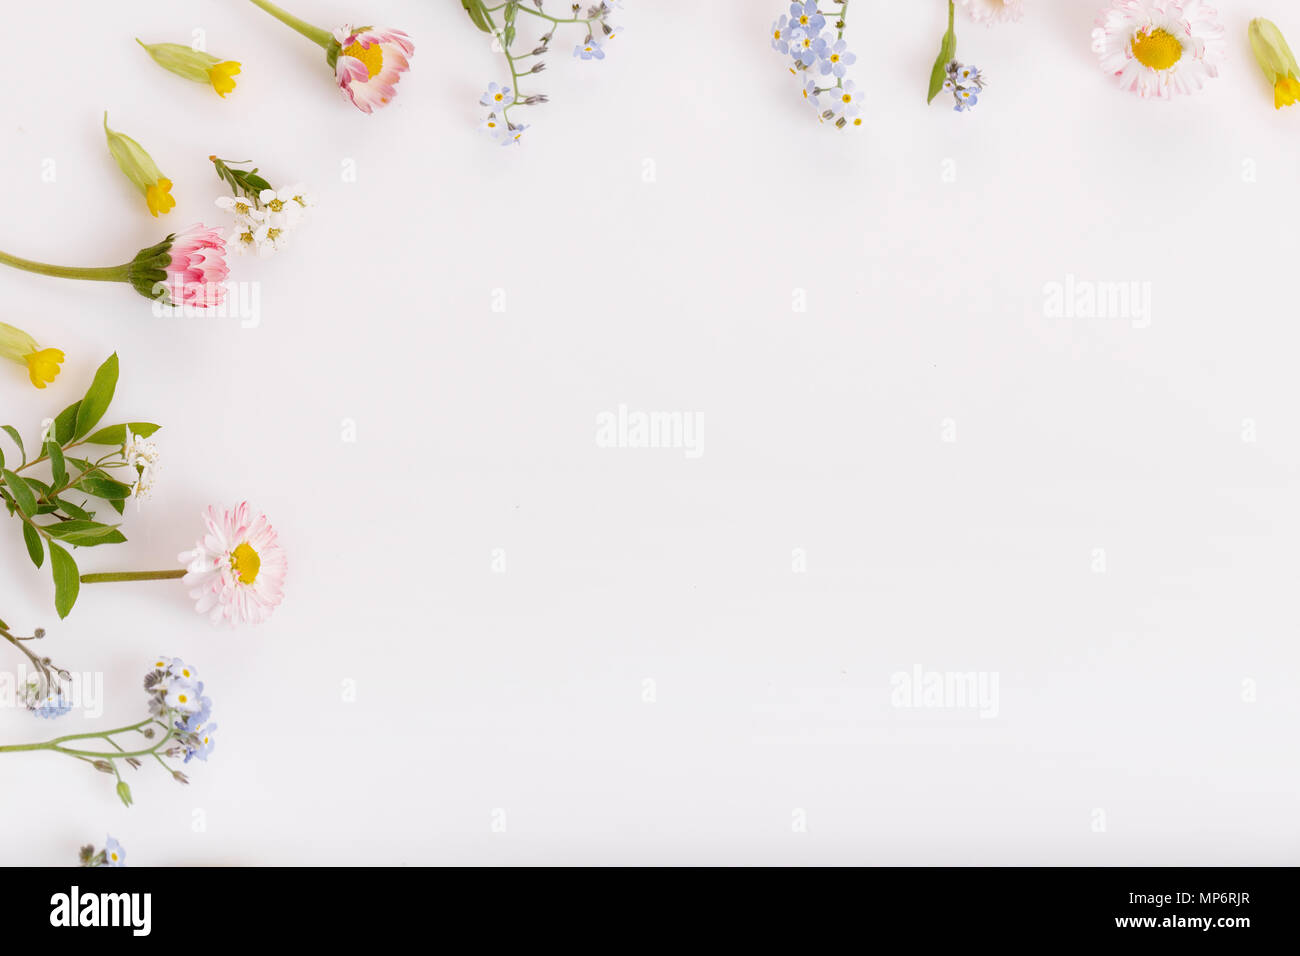 Pink Flowers Frame On White Background Stock Photo 185776383 Alamy